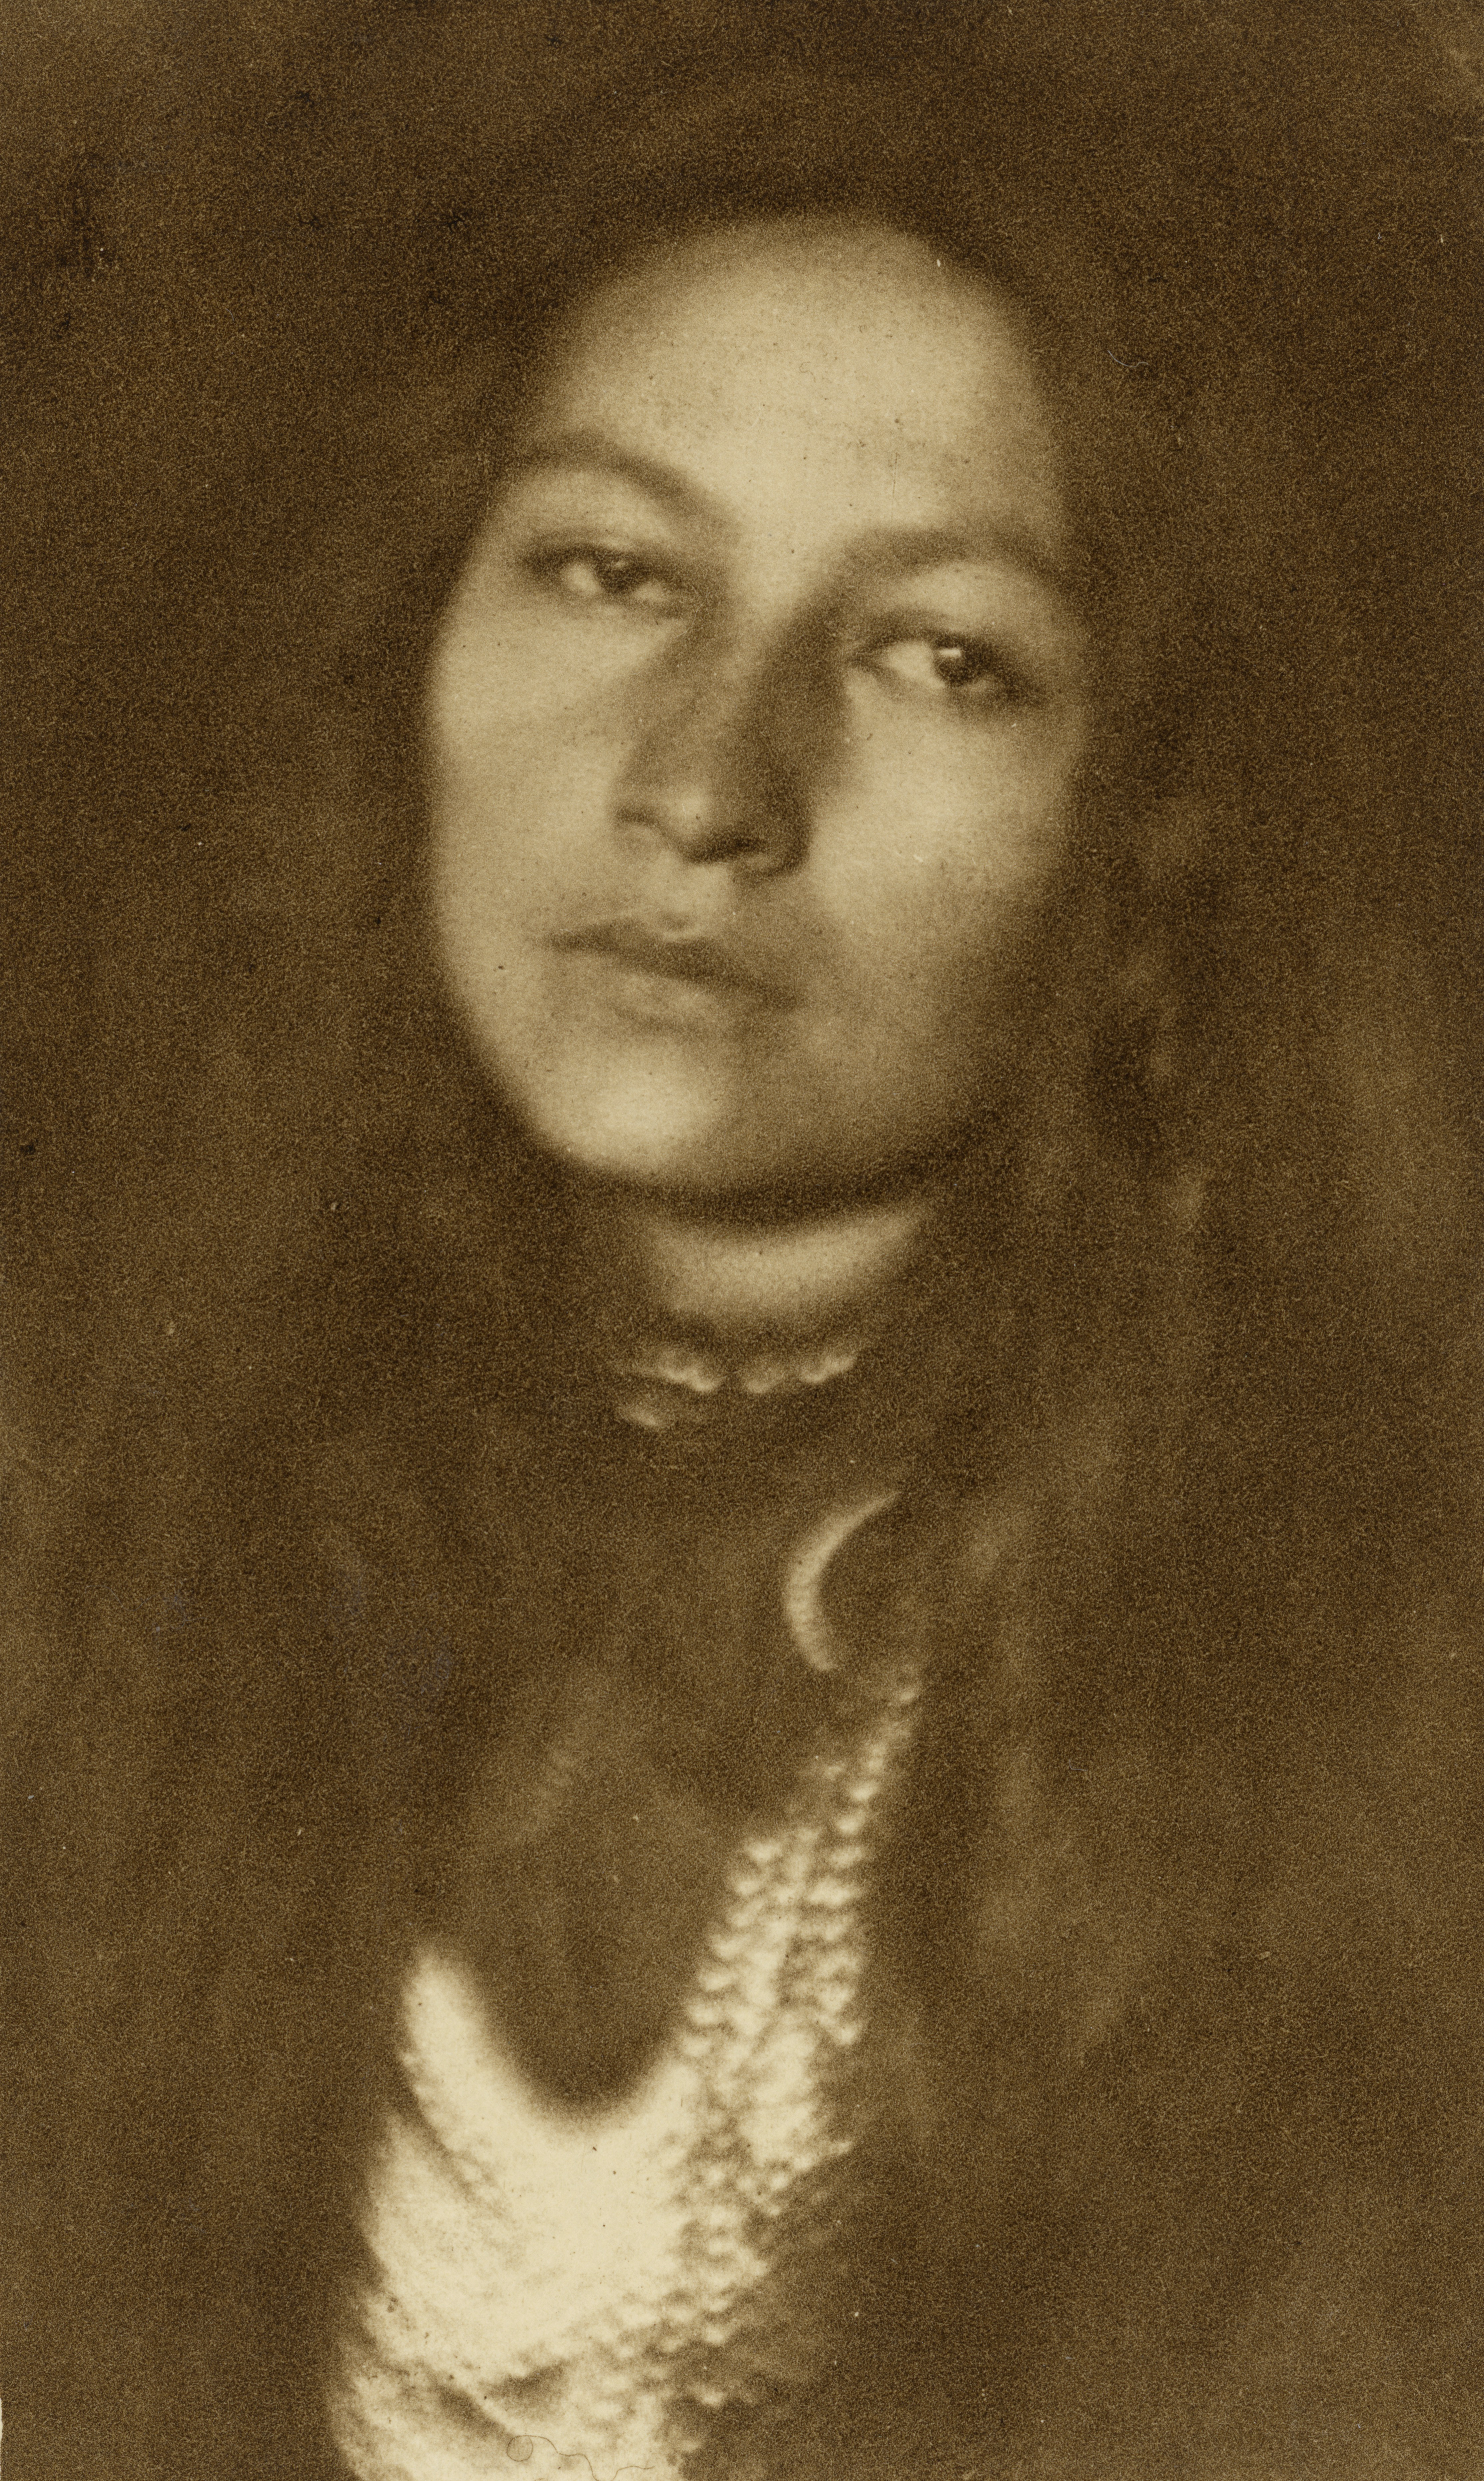 Zitkala-Ša, 1898. Photograph by Joseph T. Keiley. Image courtesy National Portrait Gallery, Smithsonian Institute.